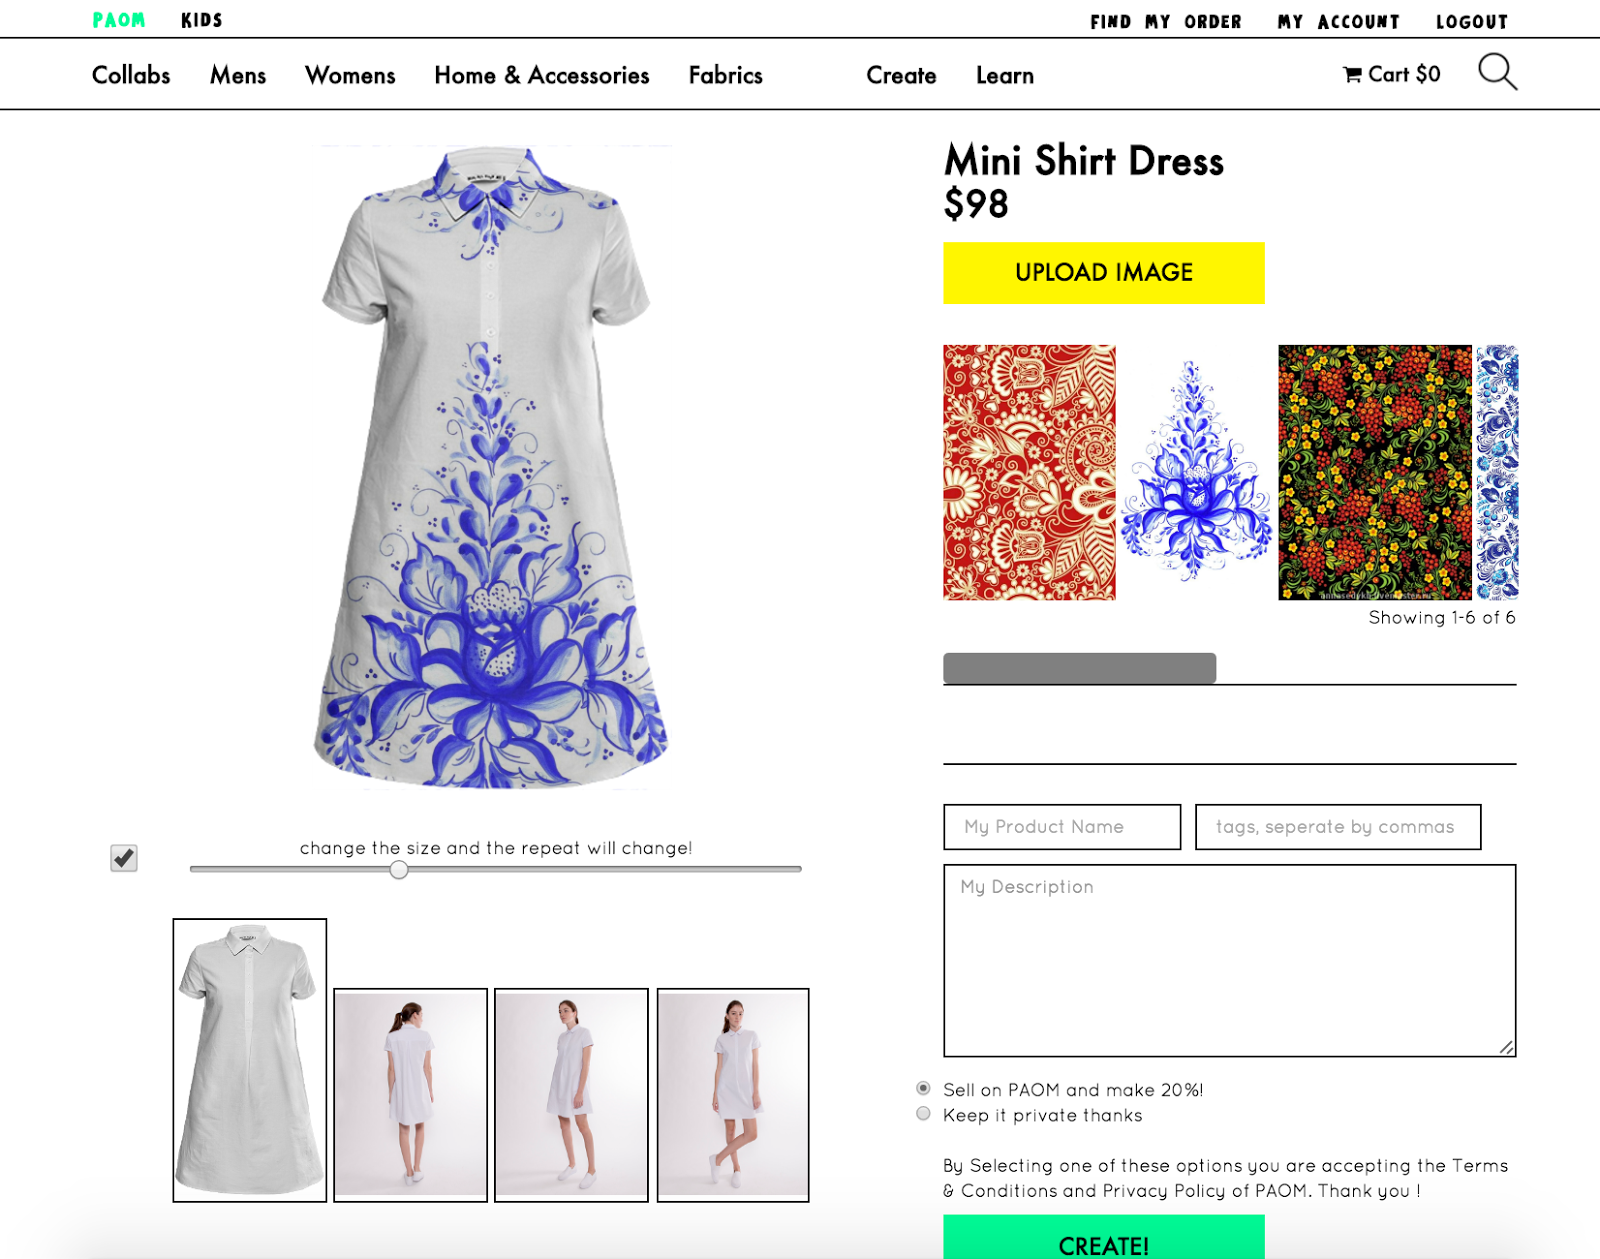 ab44df638e87 Fashion Customization   On-Demand Production — PART 1  Overview of ...